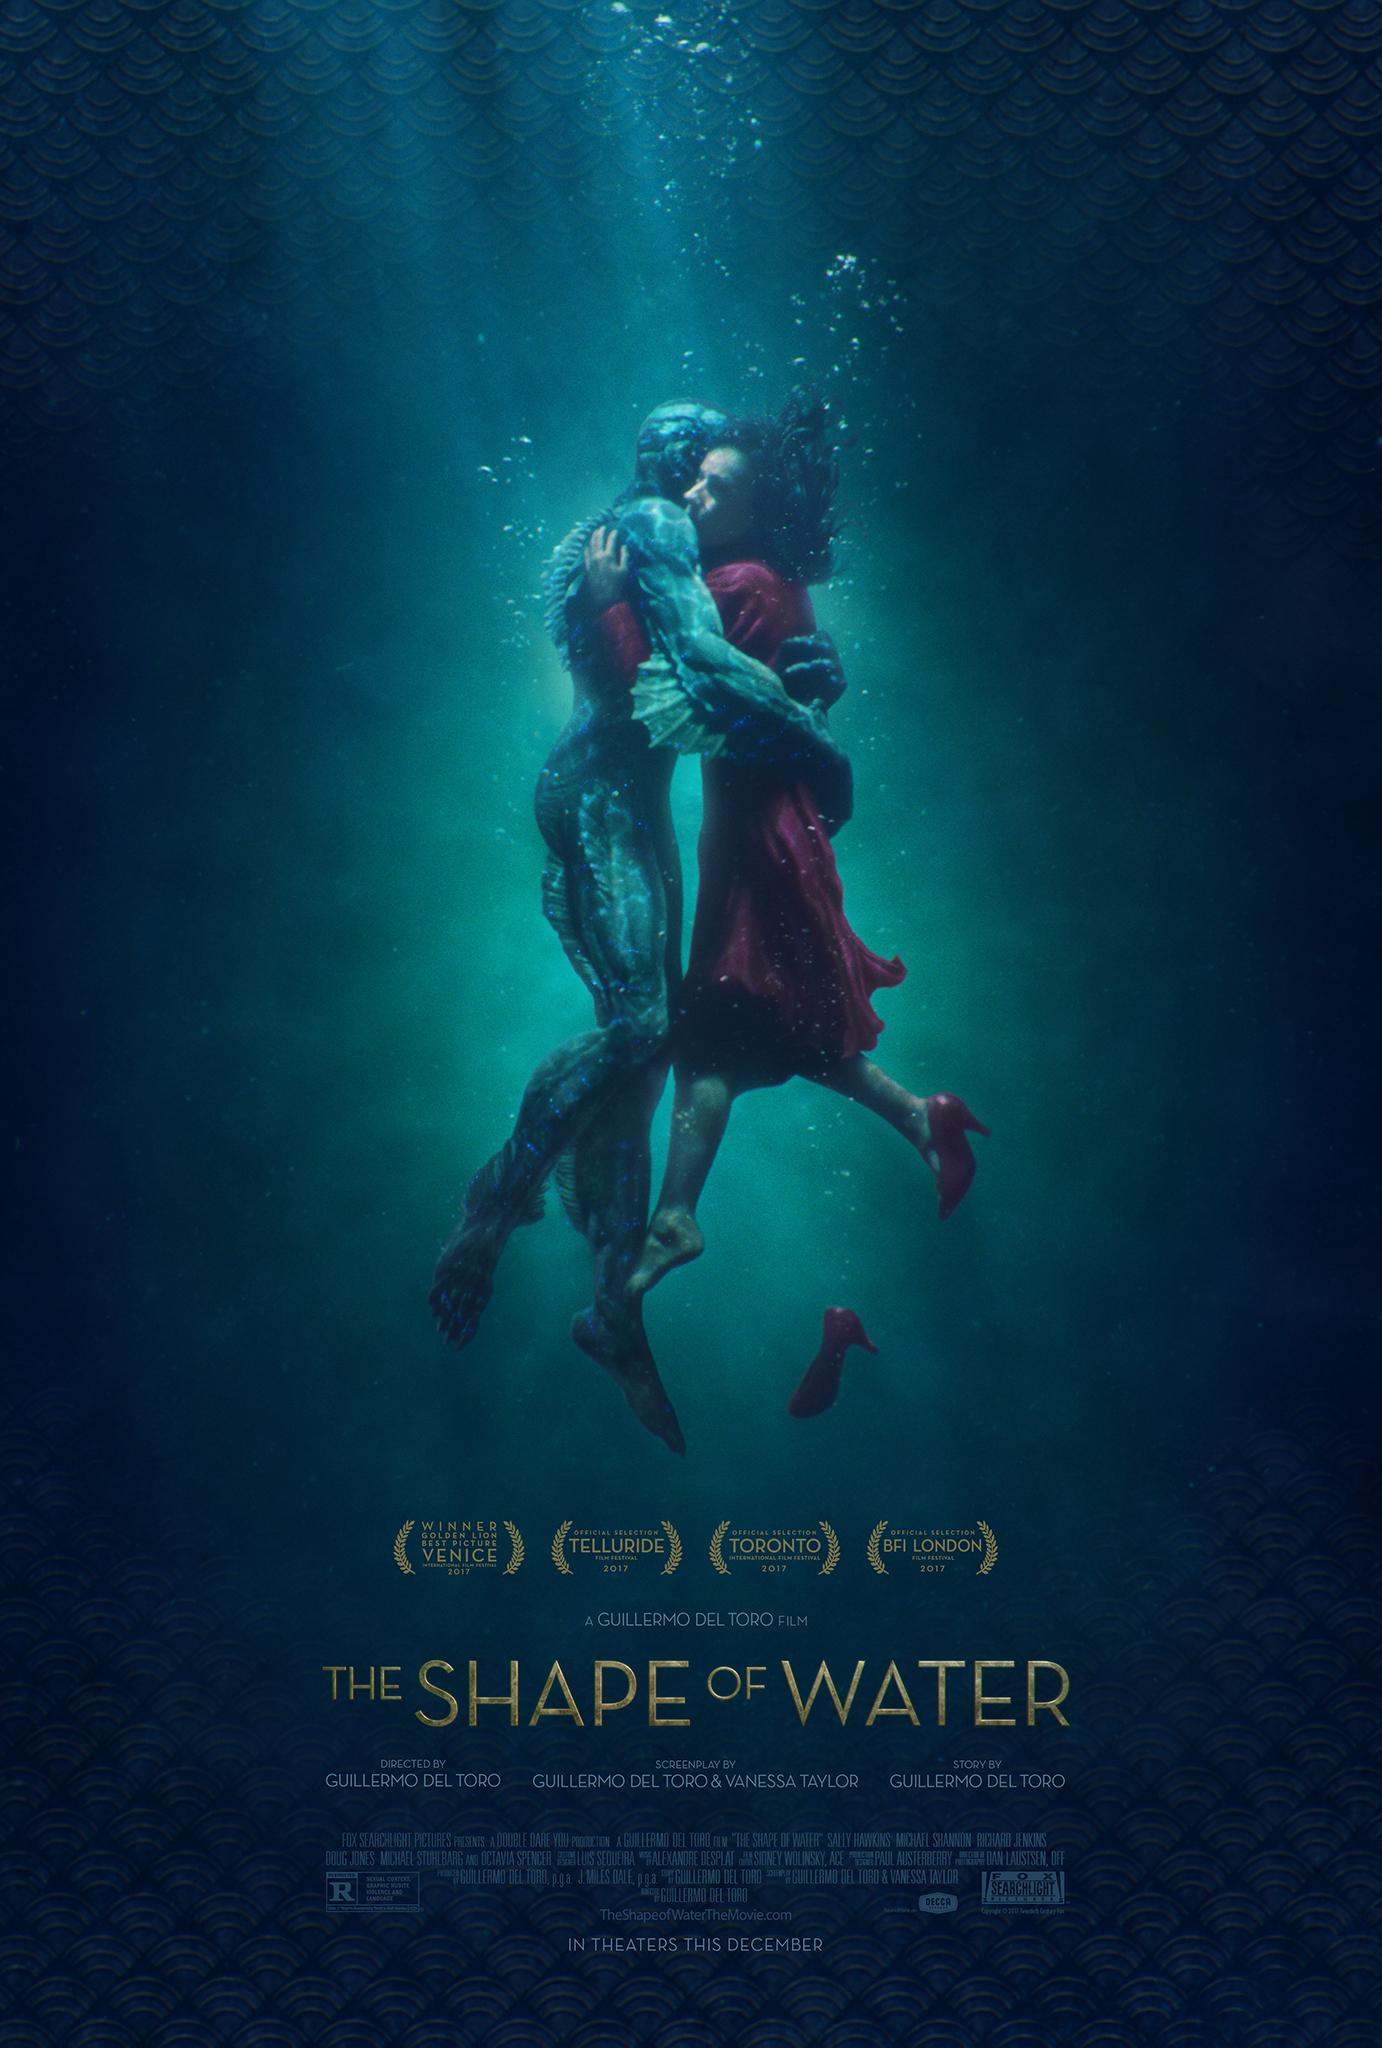 https://blog.screenweek.it/wp-content/uploads/2017/10/the-shape-of-water-poster.jpg